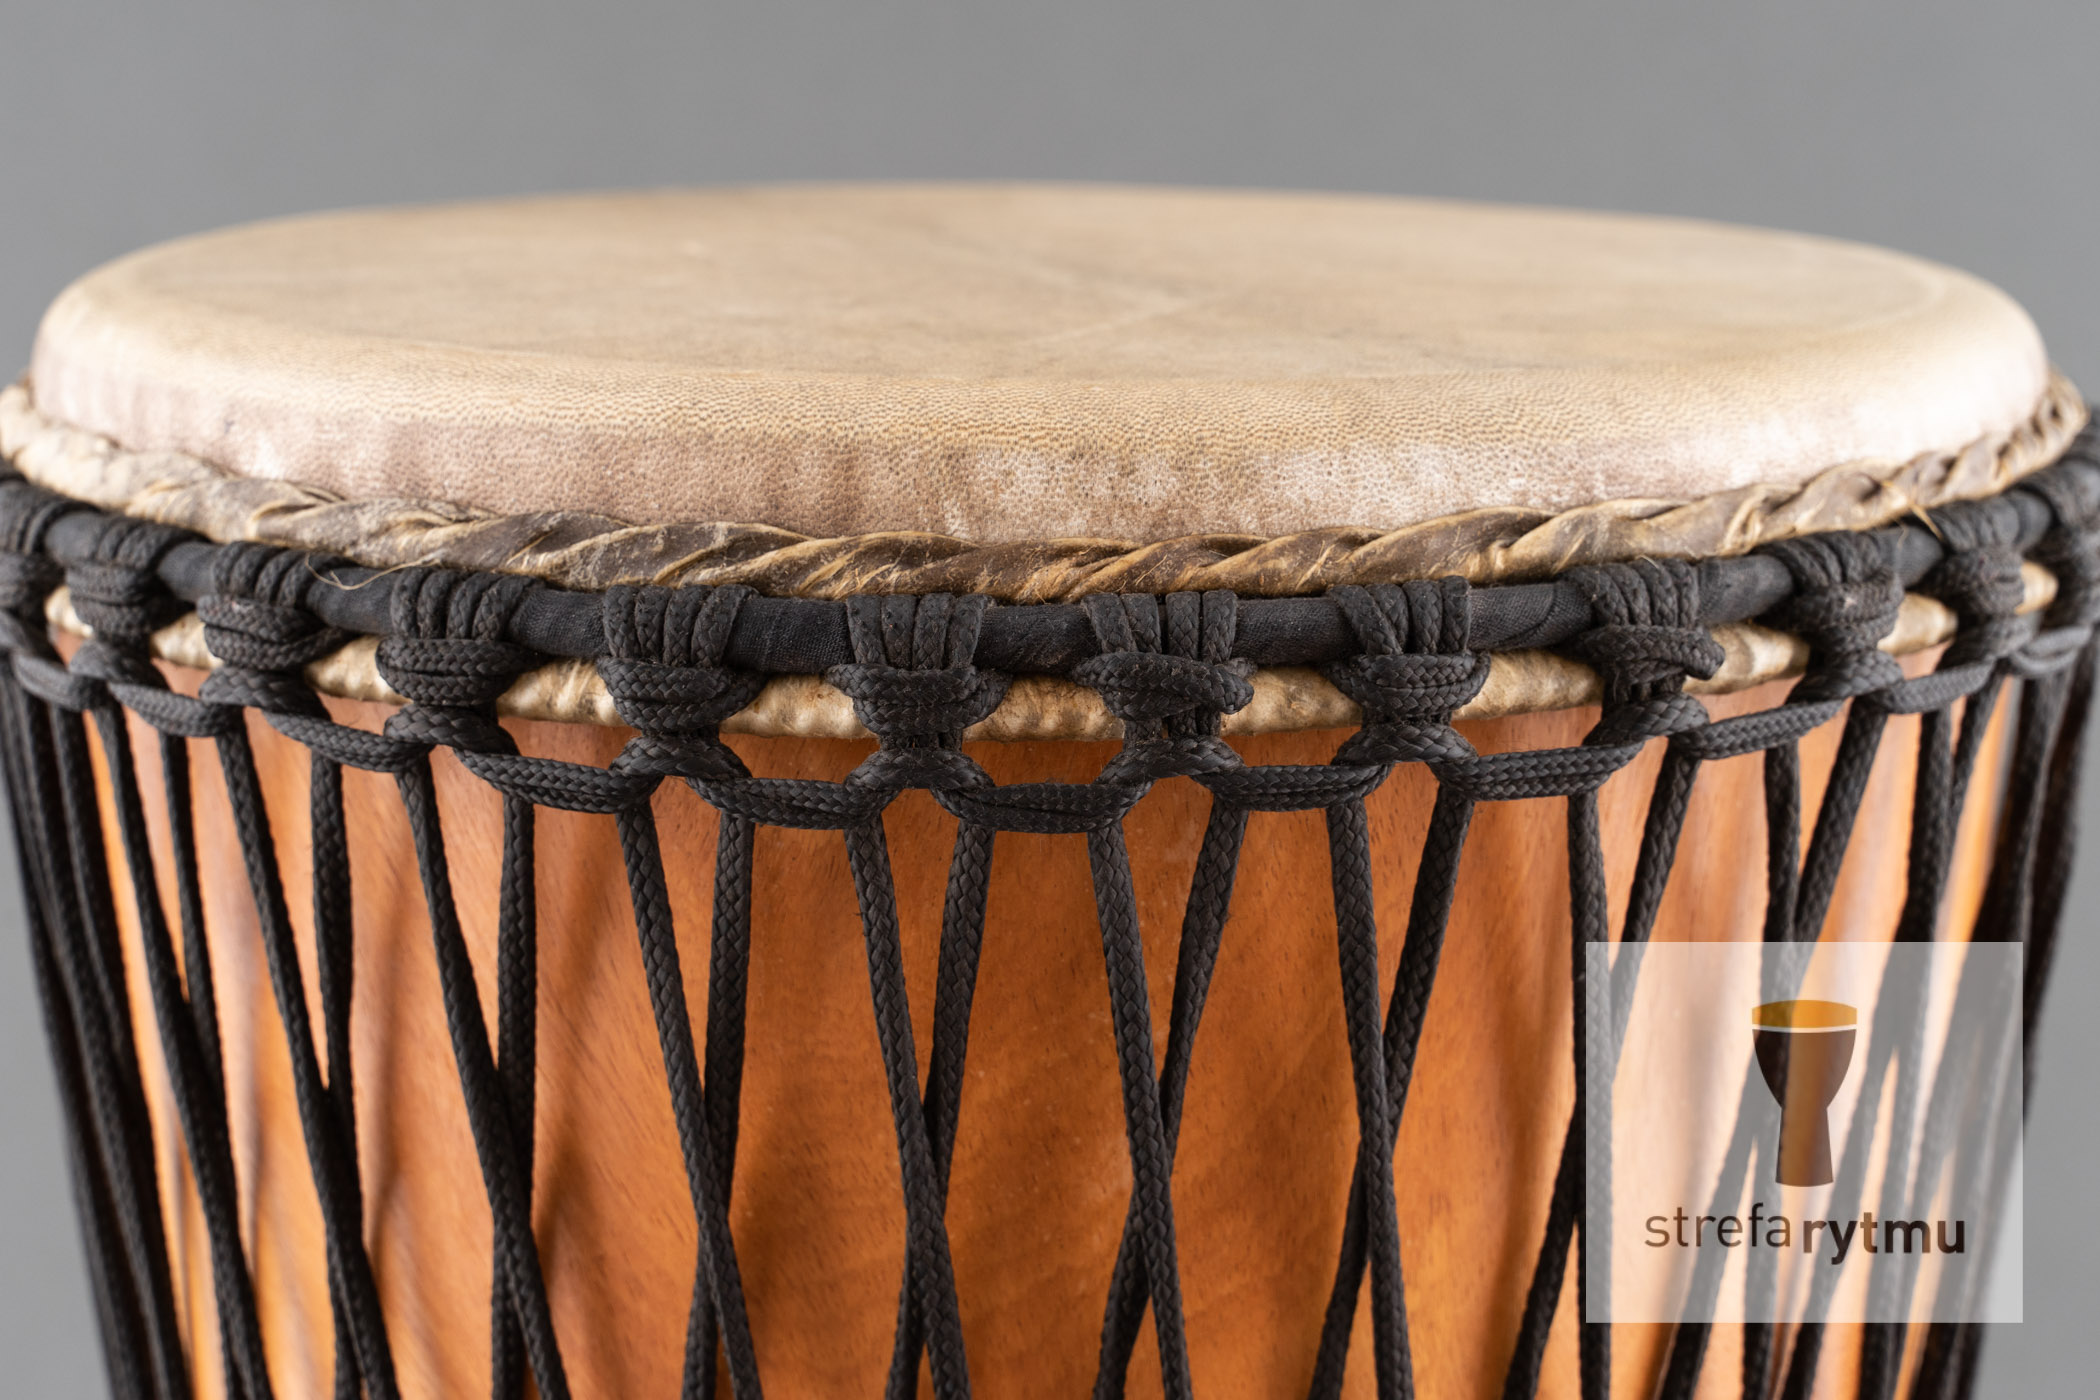 djembe prepared to buy